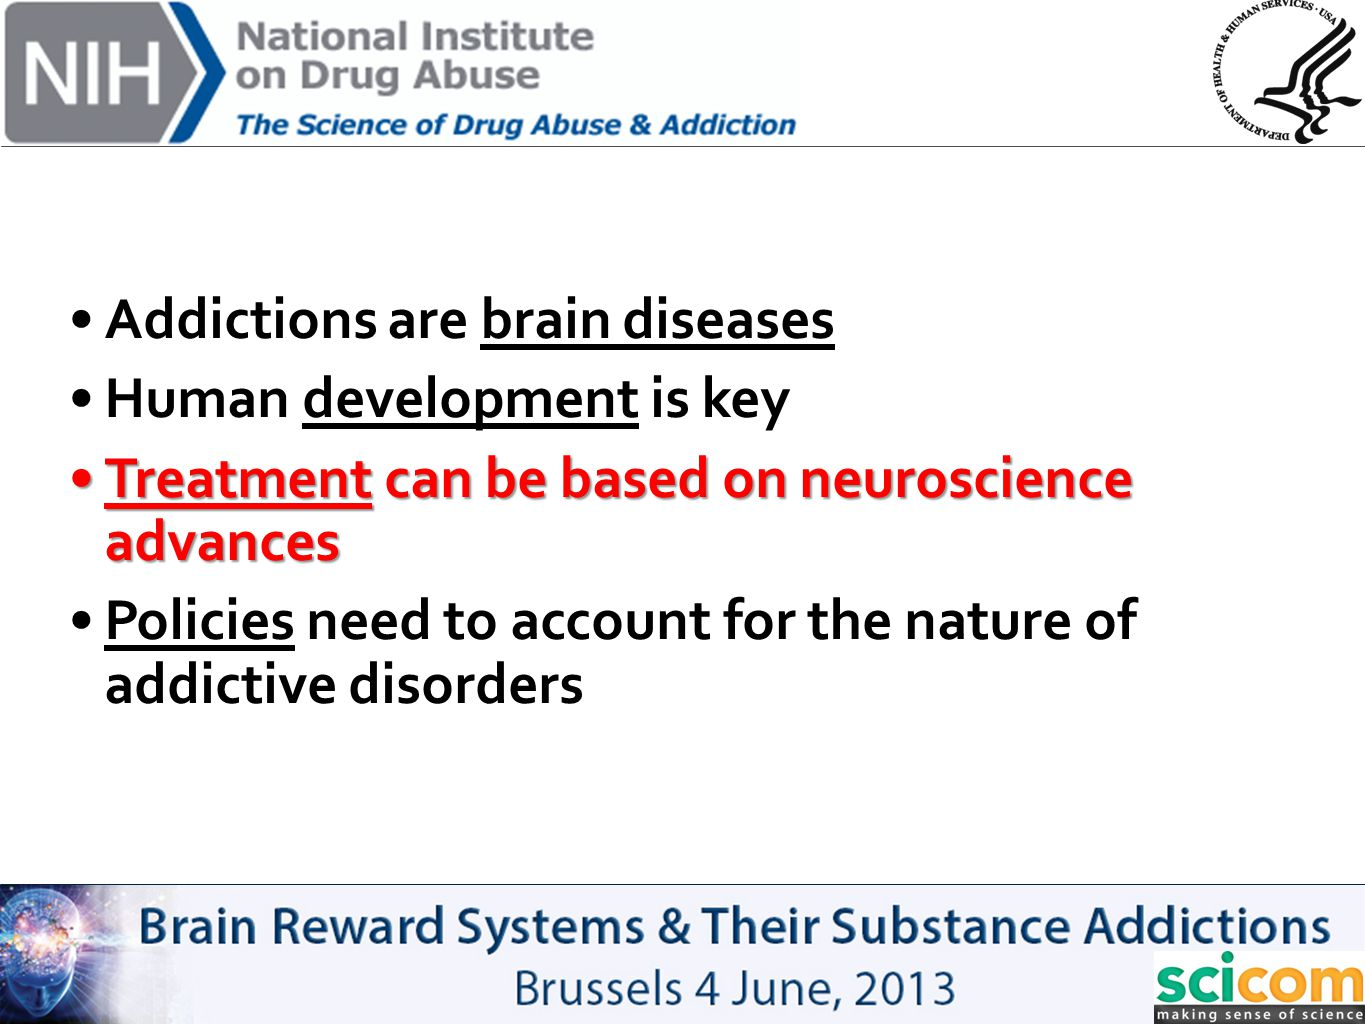 Addictions are brain diseases Human development is key Treatment can be based on neuroscience advancesTreatment can be based on neuroscience advances